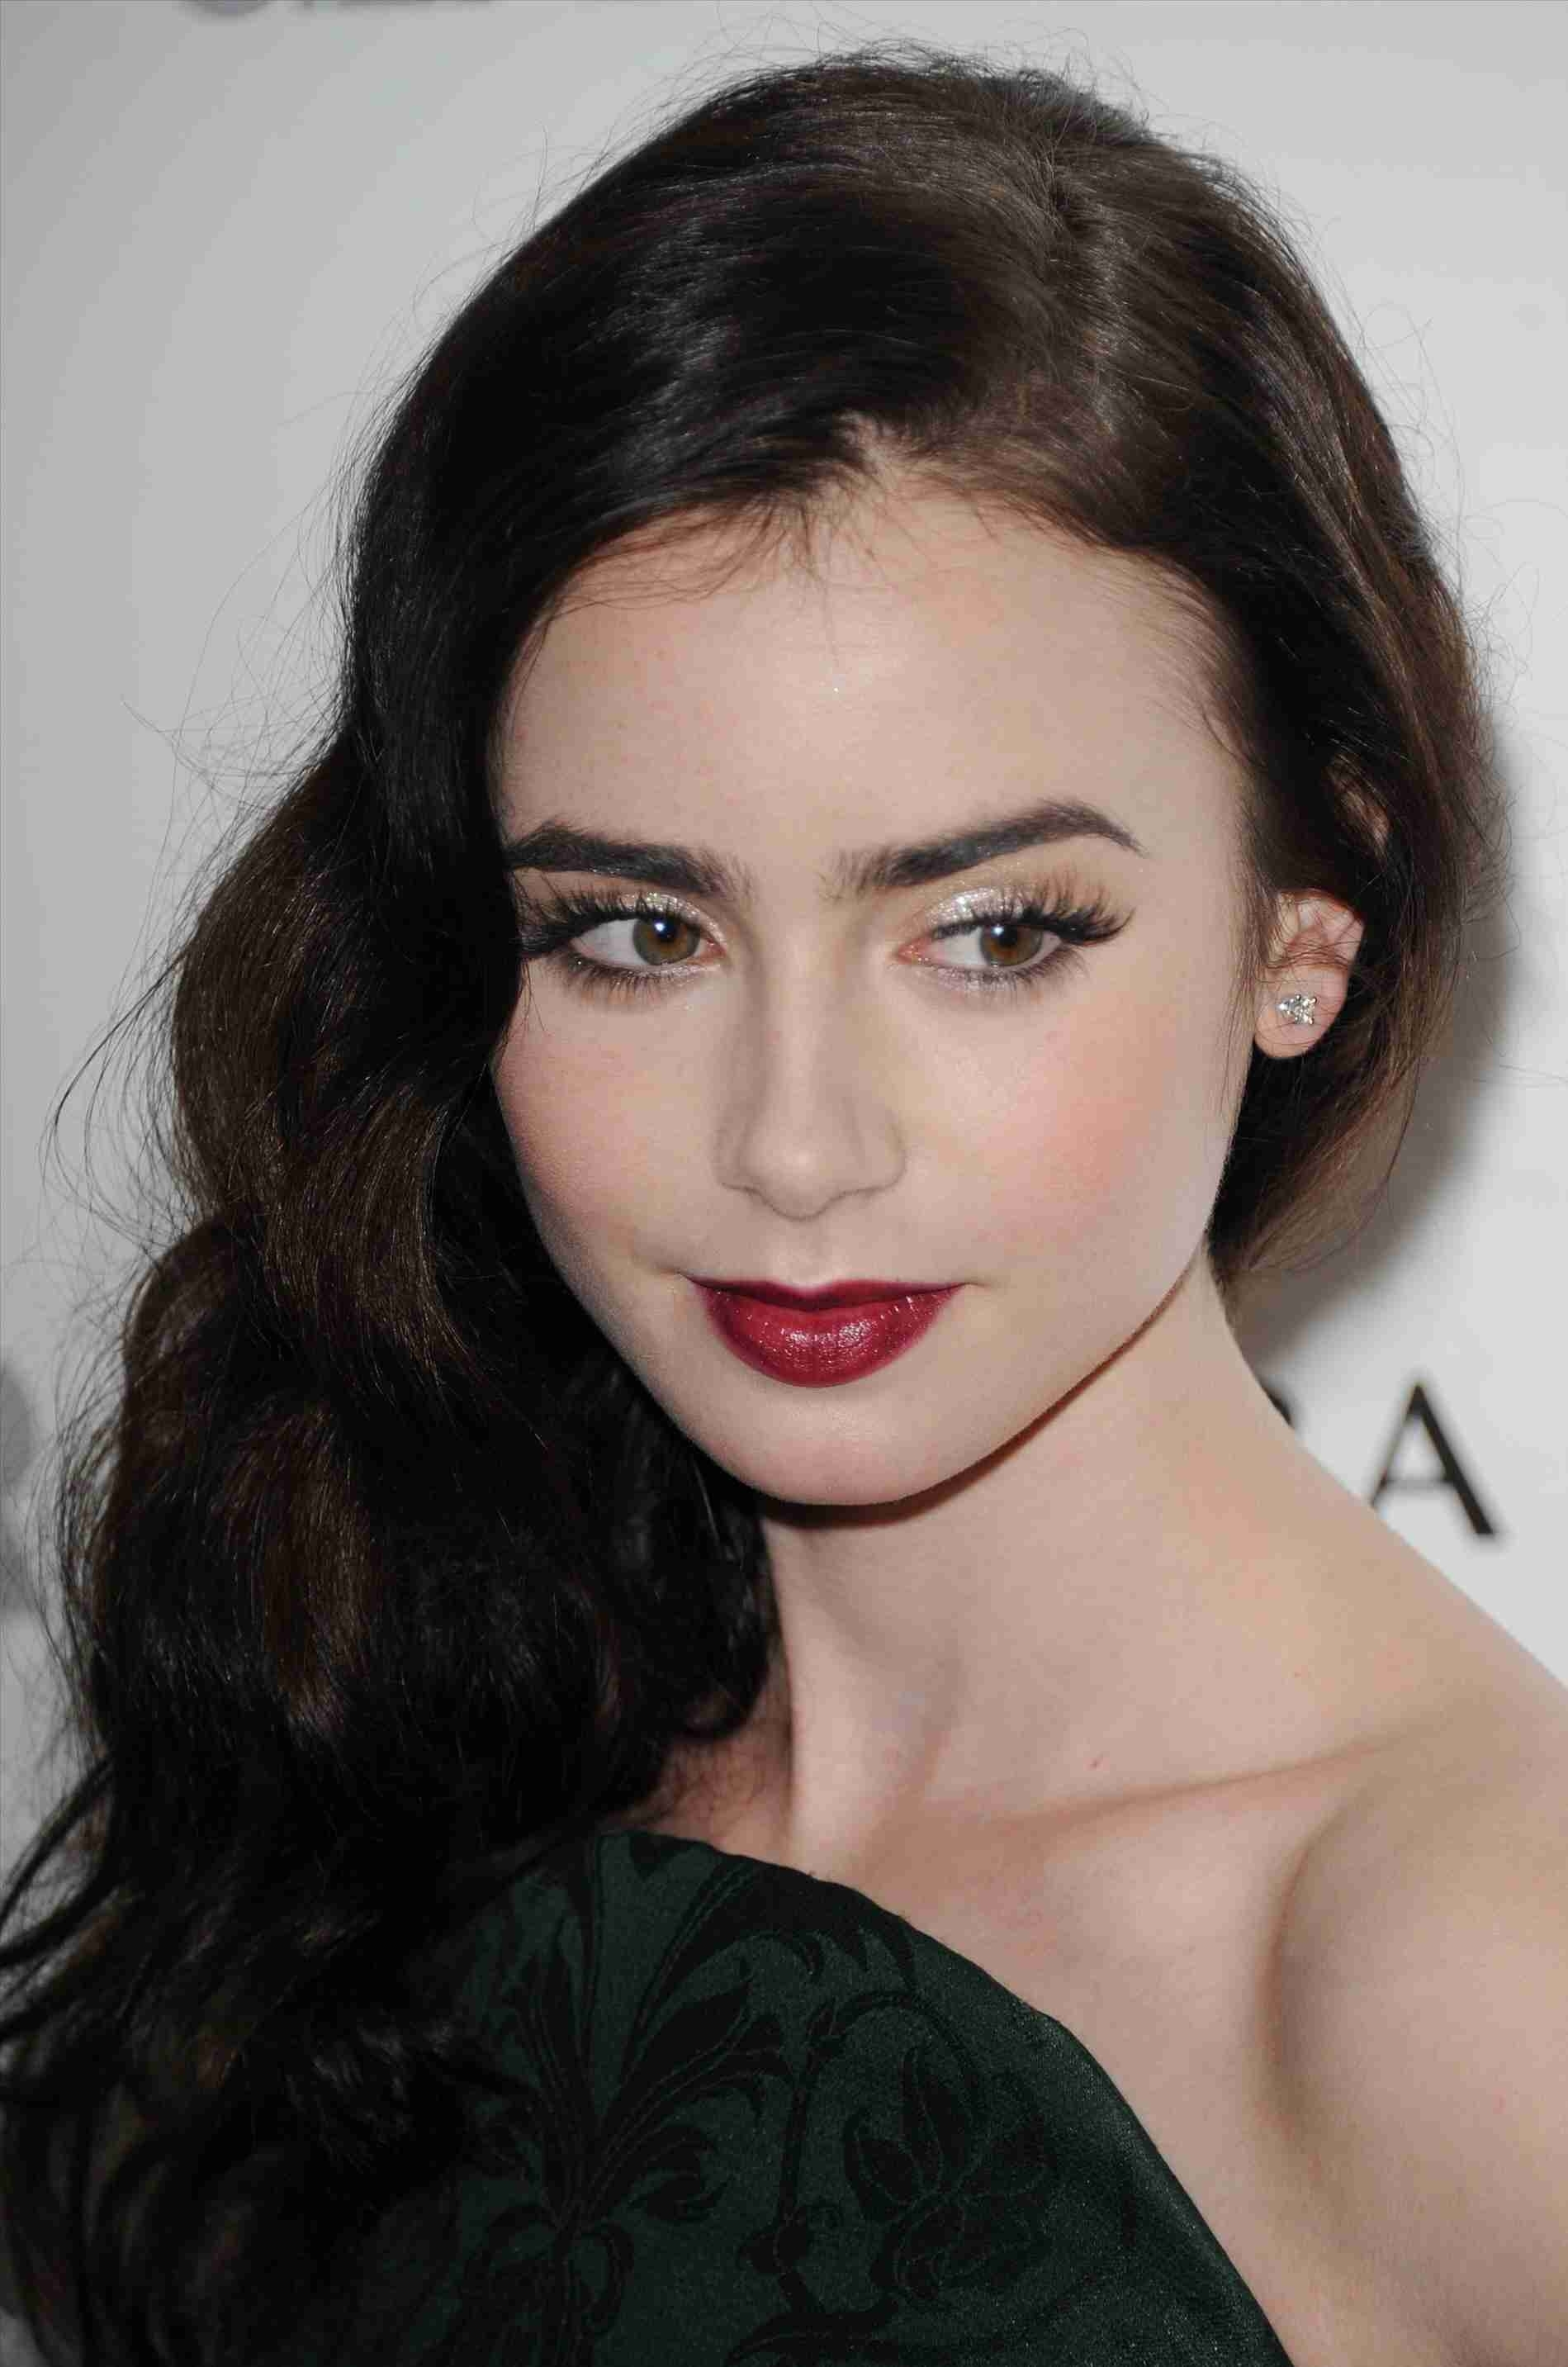 Makeup For Pale Skin And Dark Hair People With Green Eyes Winter for Makeup For Pale Skin Dark Hair Green Eyes